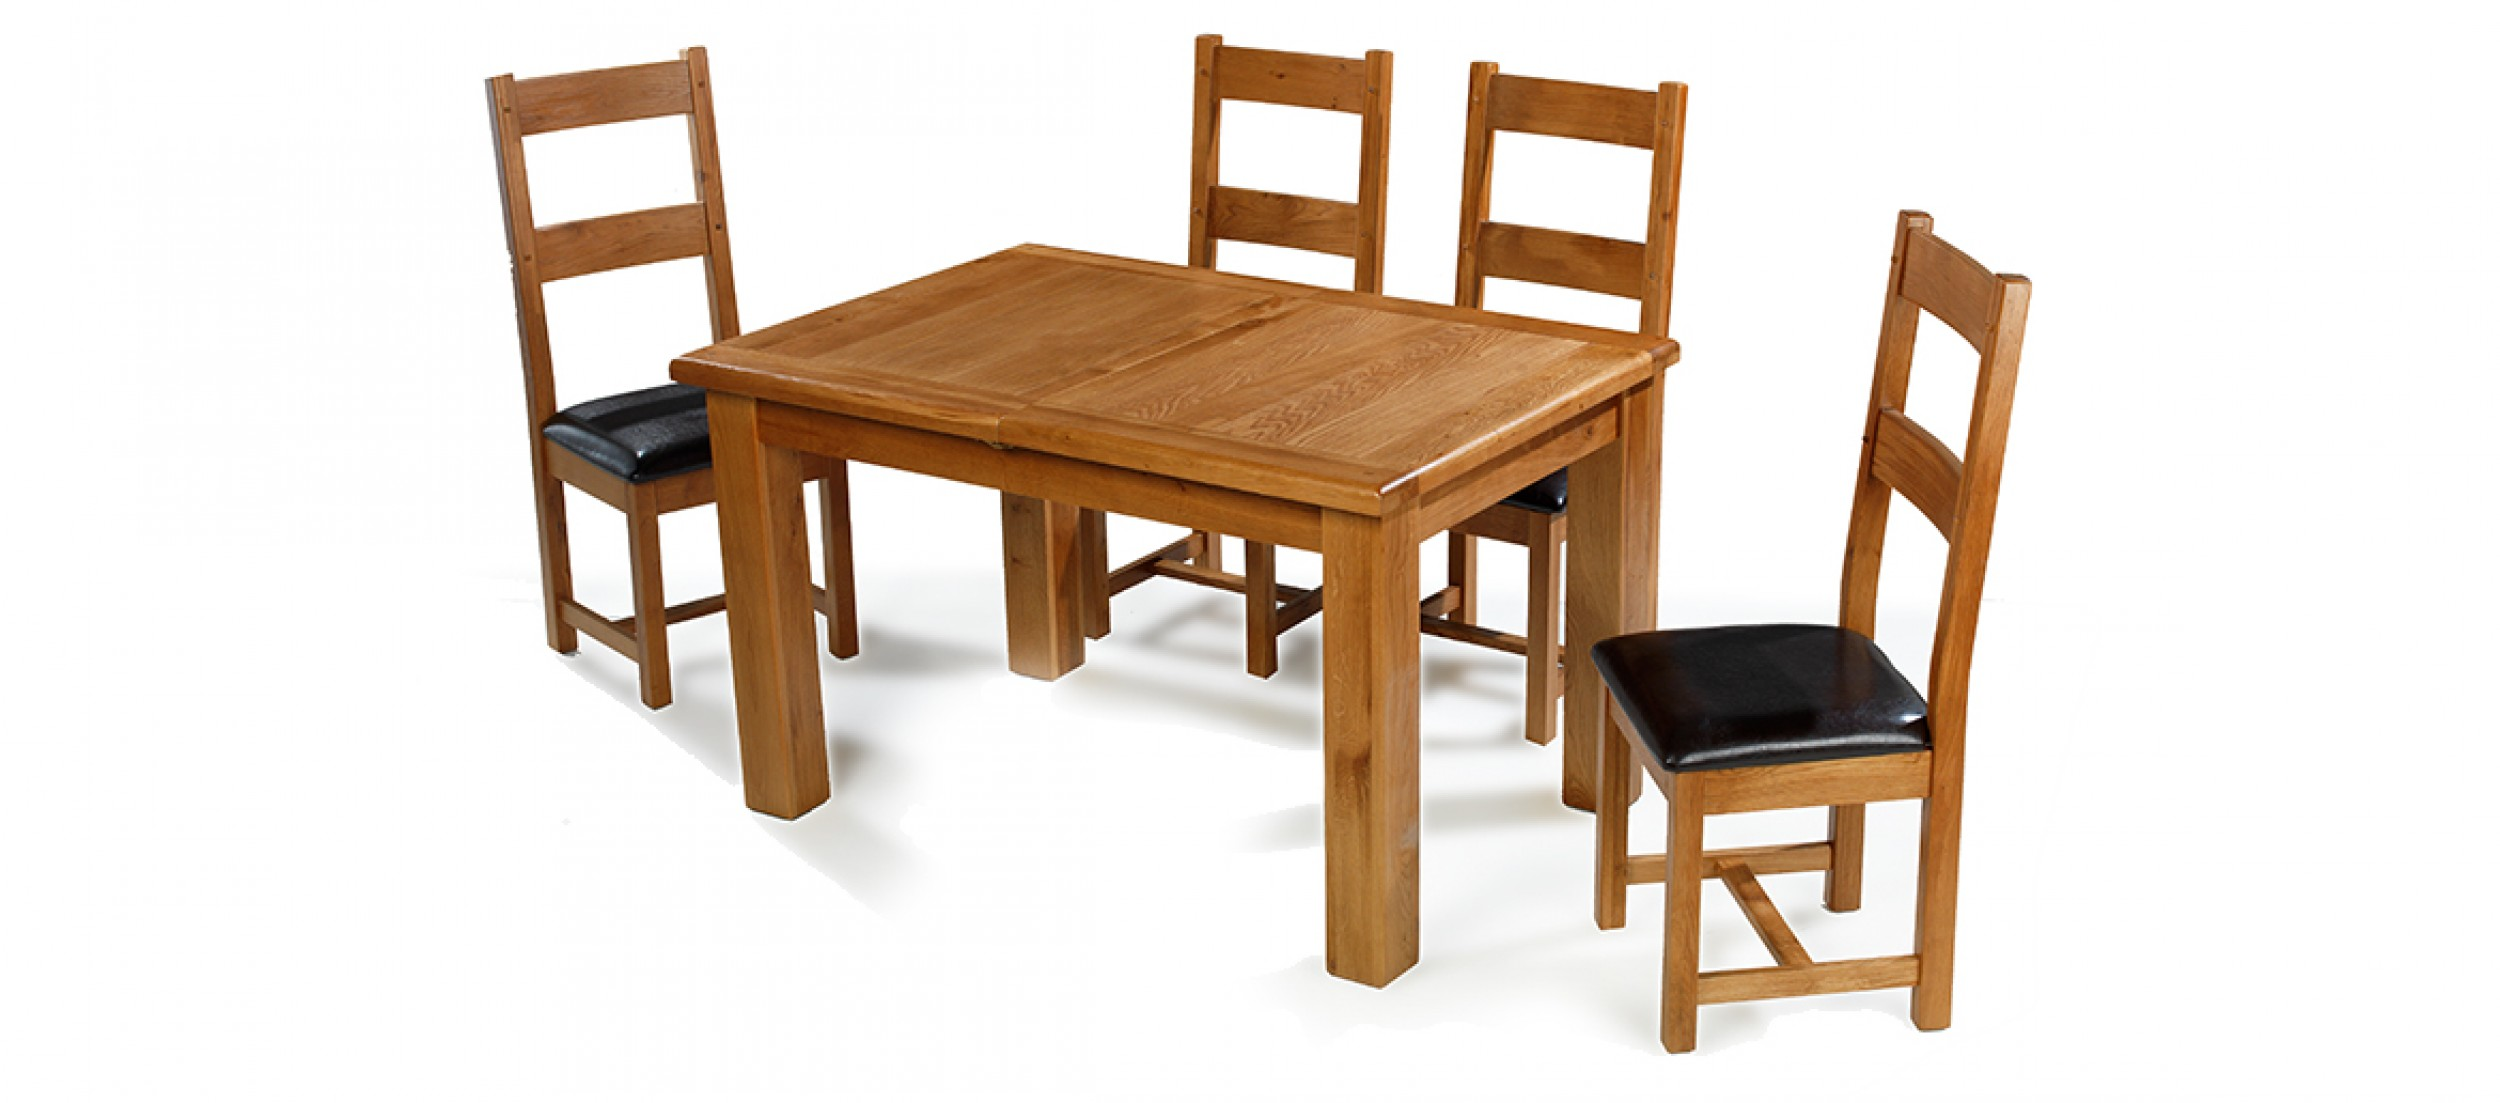 Barham Oak 132 198 Cm Extending Dining Table And 4 Chairs